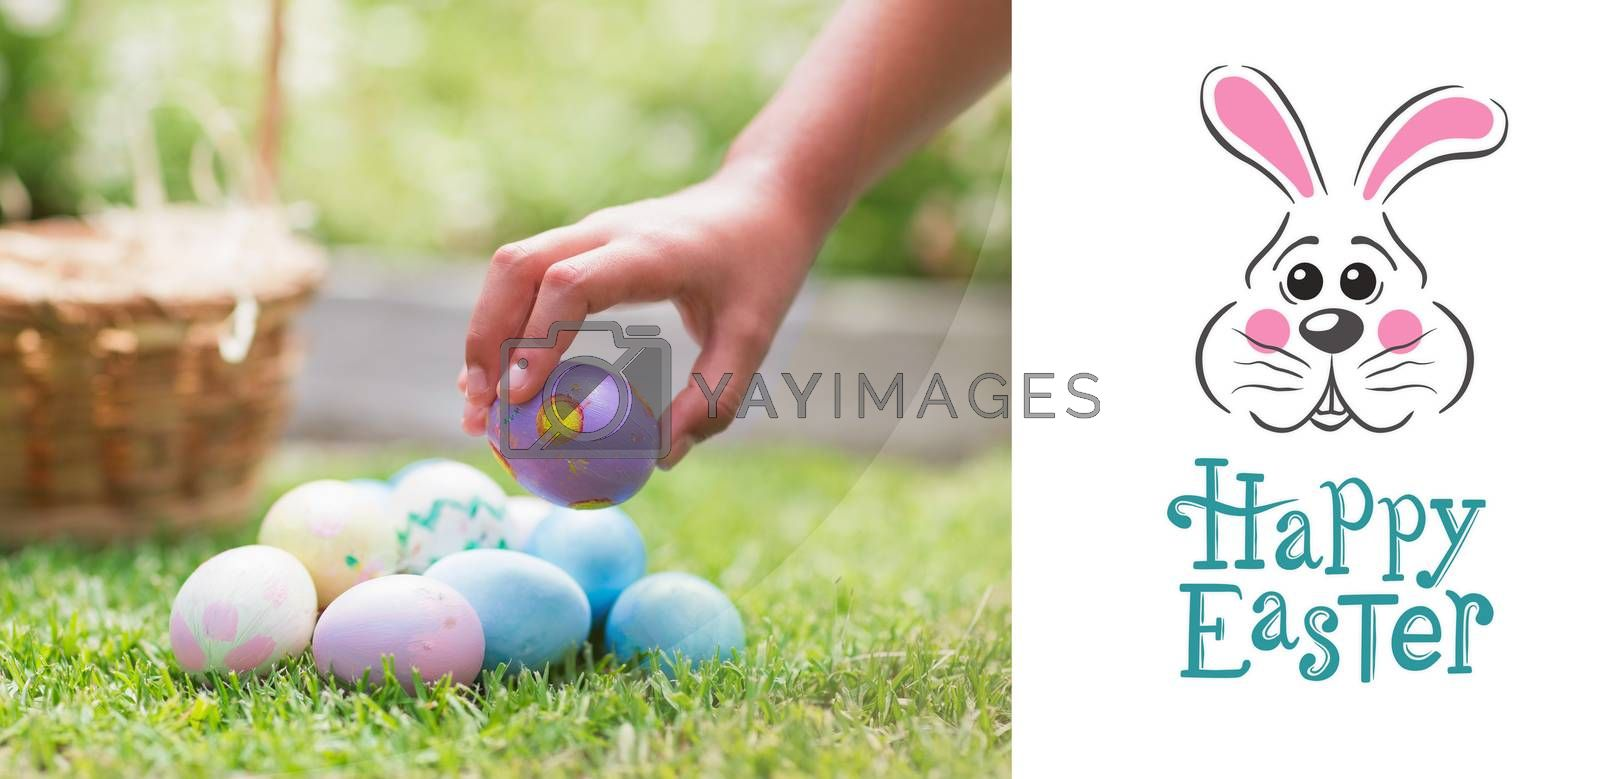 Little girl collecting easter eggs  against easter bunny with greeting